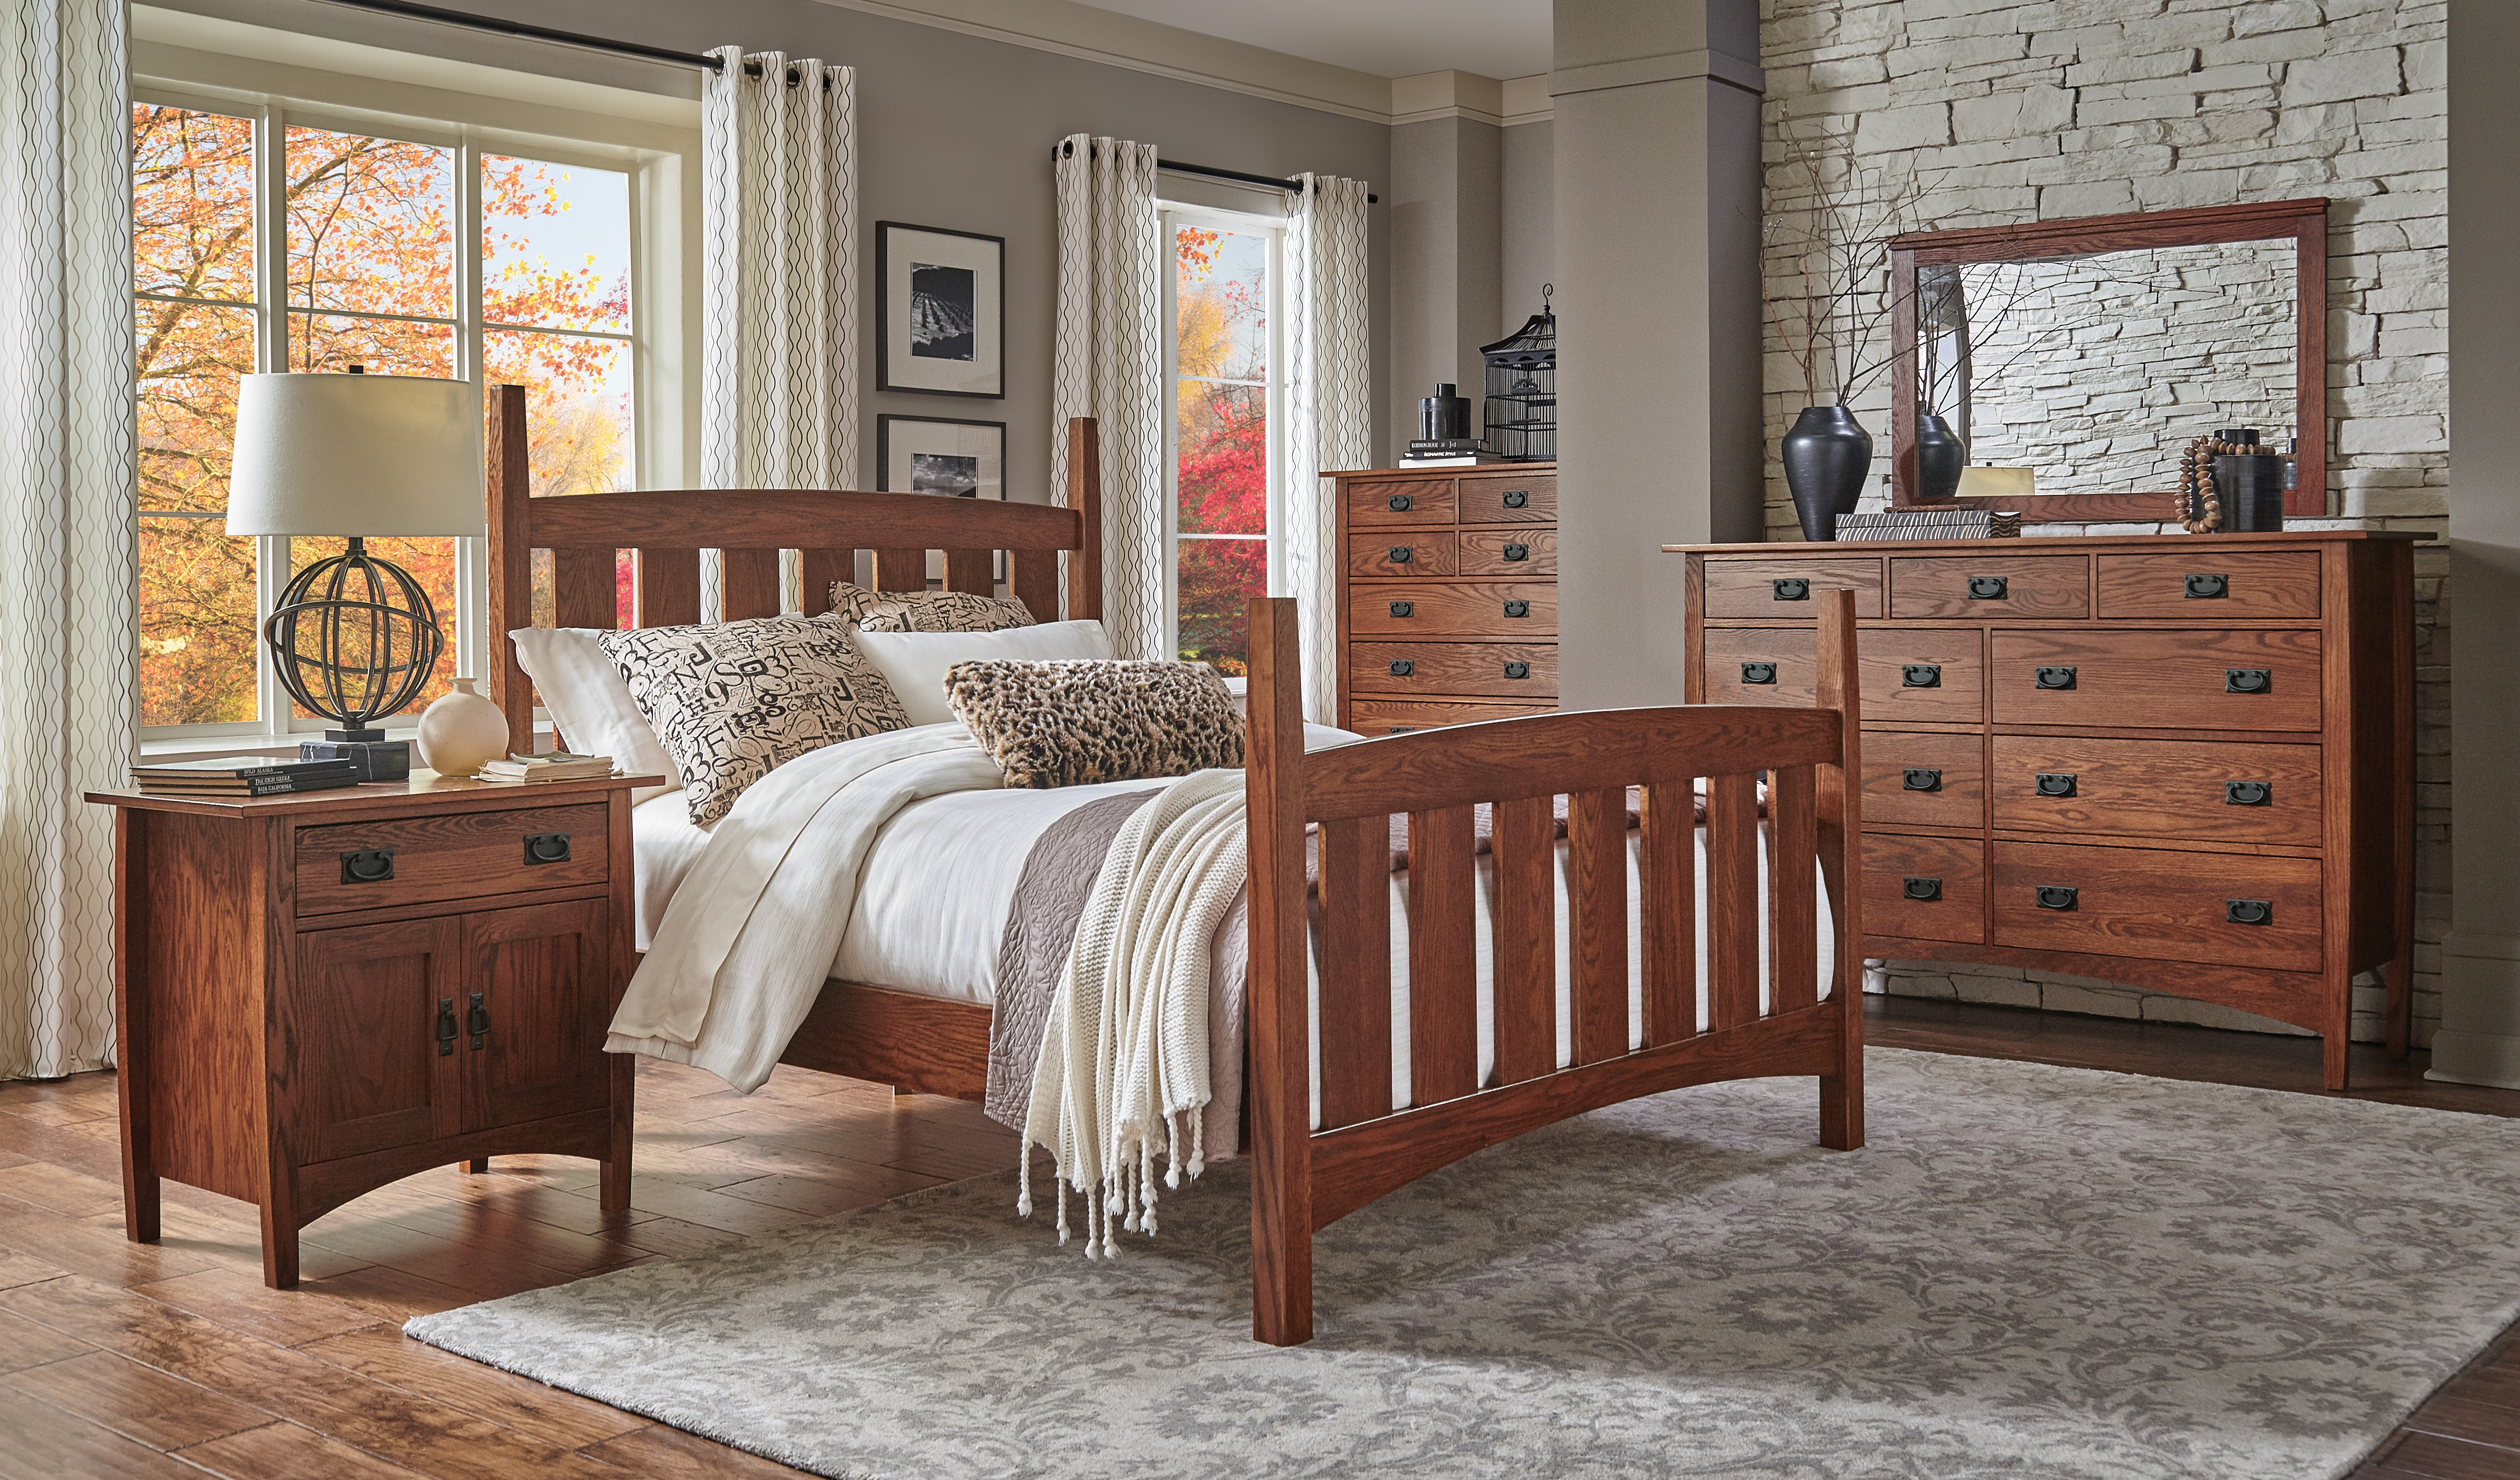 Levin Bedroom Furniture The Berkshire Collection Levin Furniture